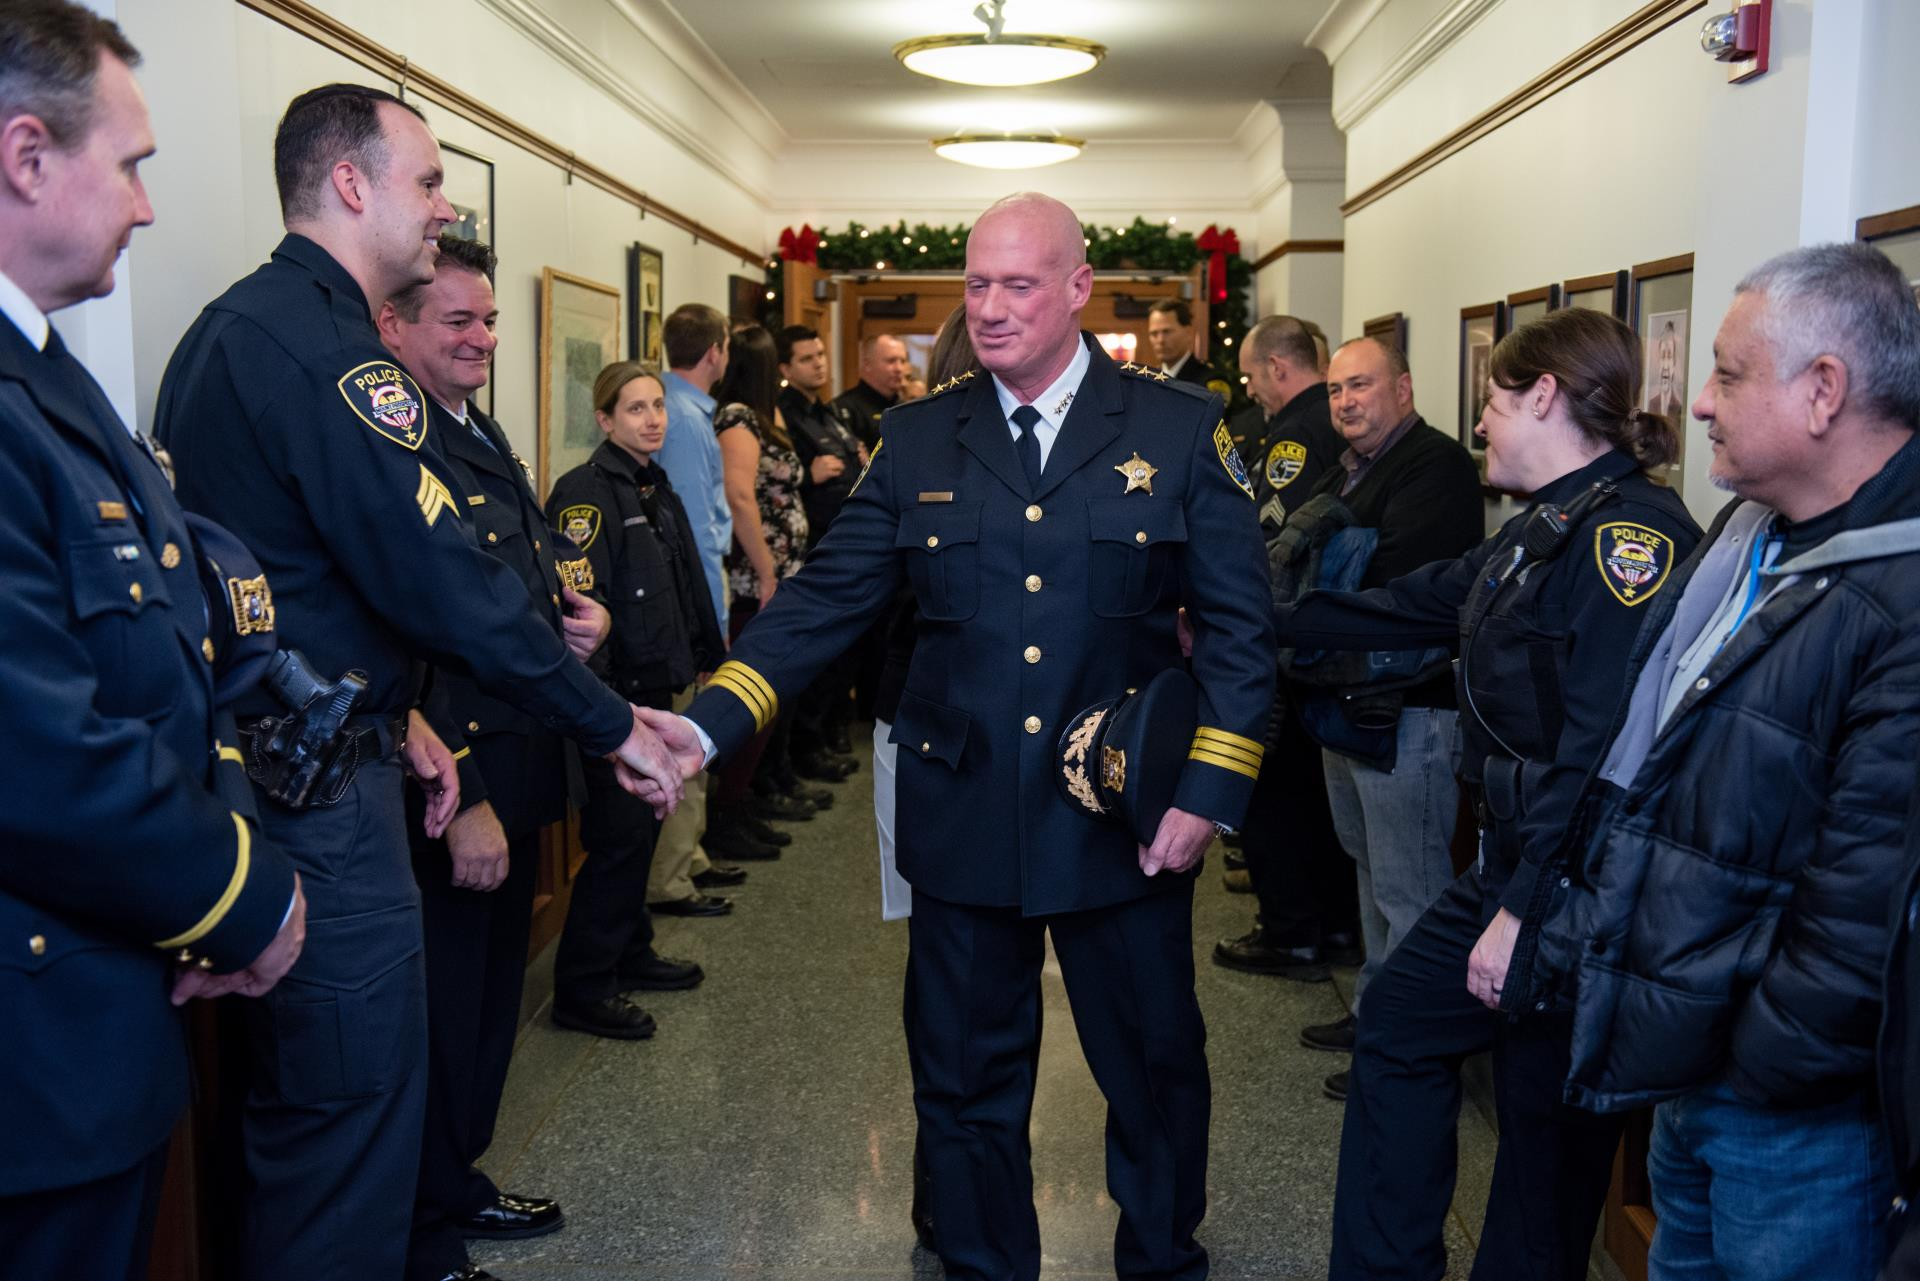 Chief Koziol Swearing-In Ceremony Final-4271